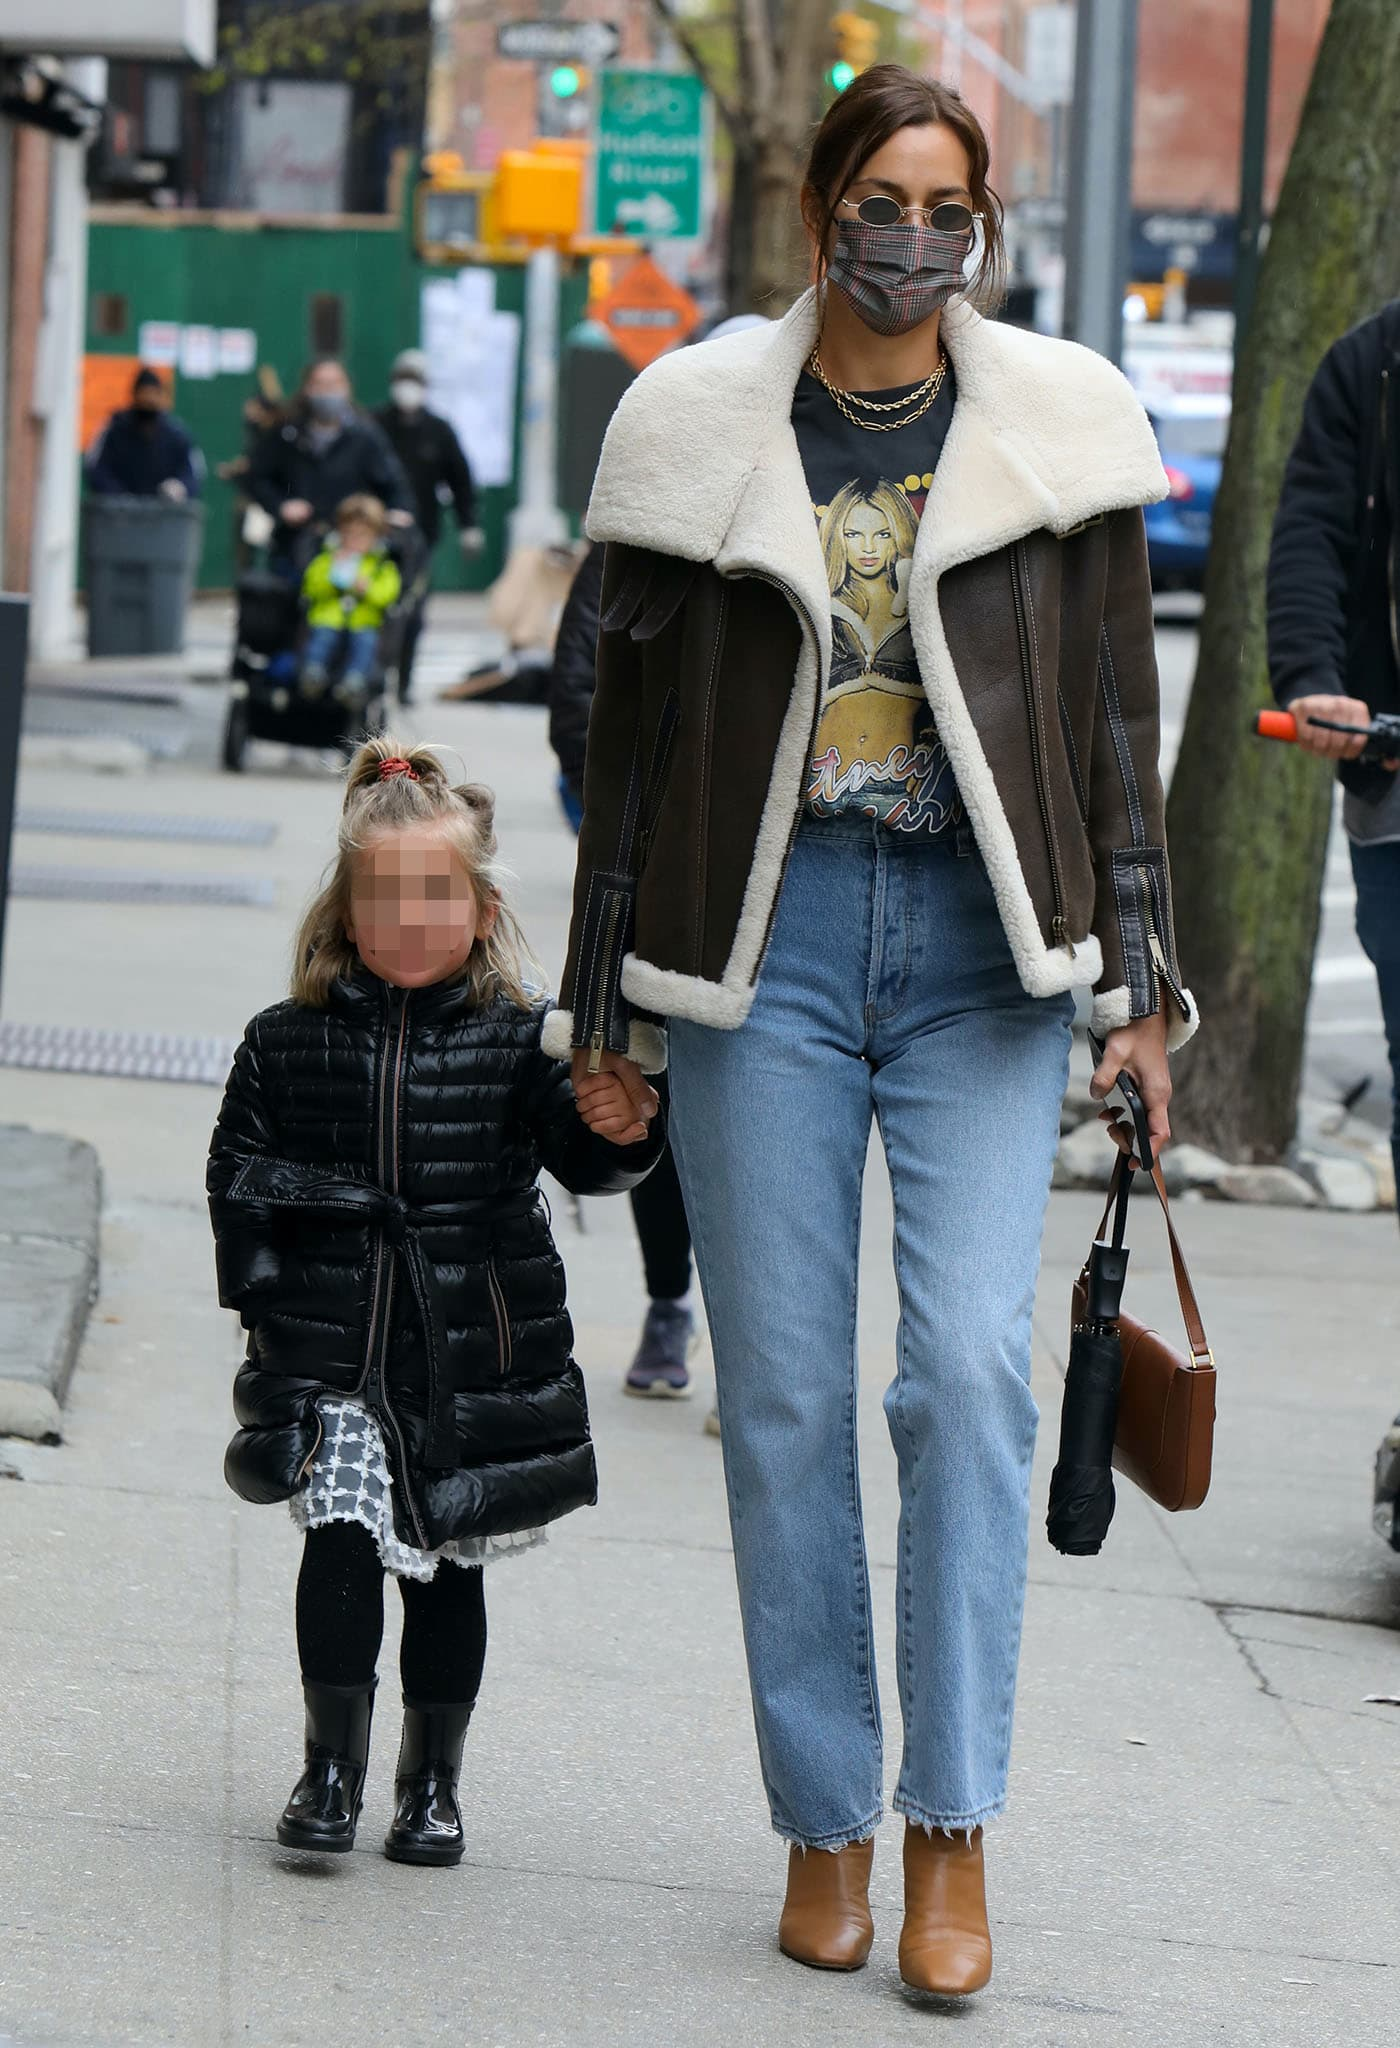 Irina Shayk steps out with her daughter, Lea, in NYC's Greenwich Village